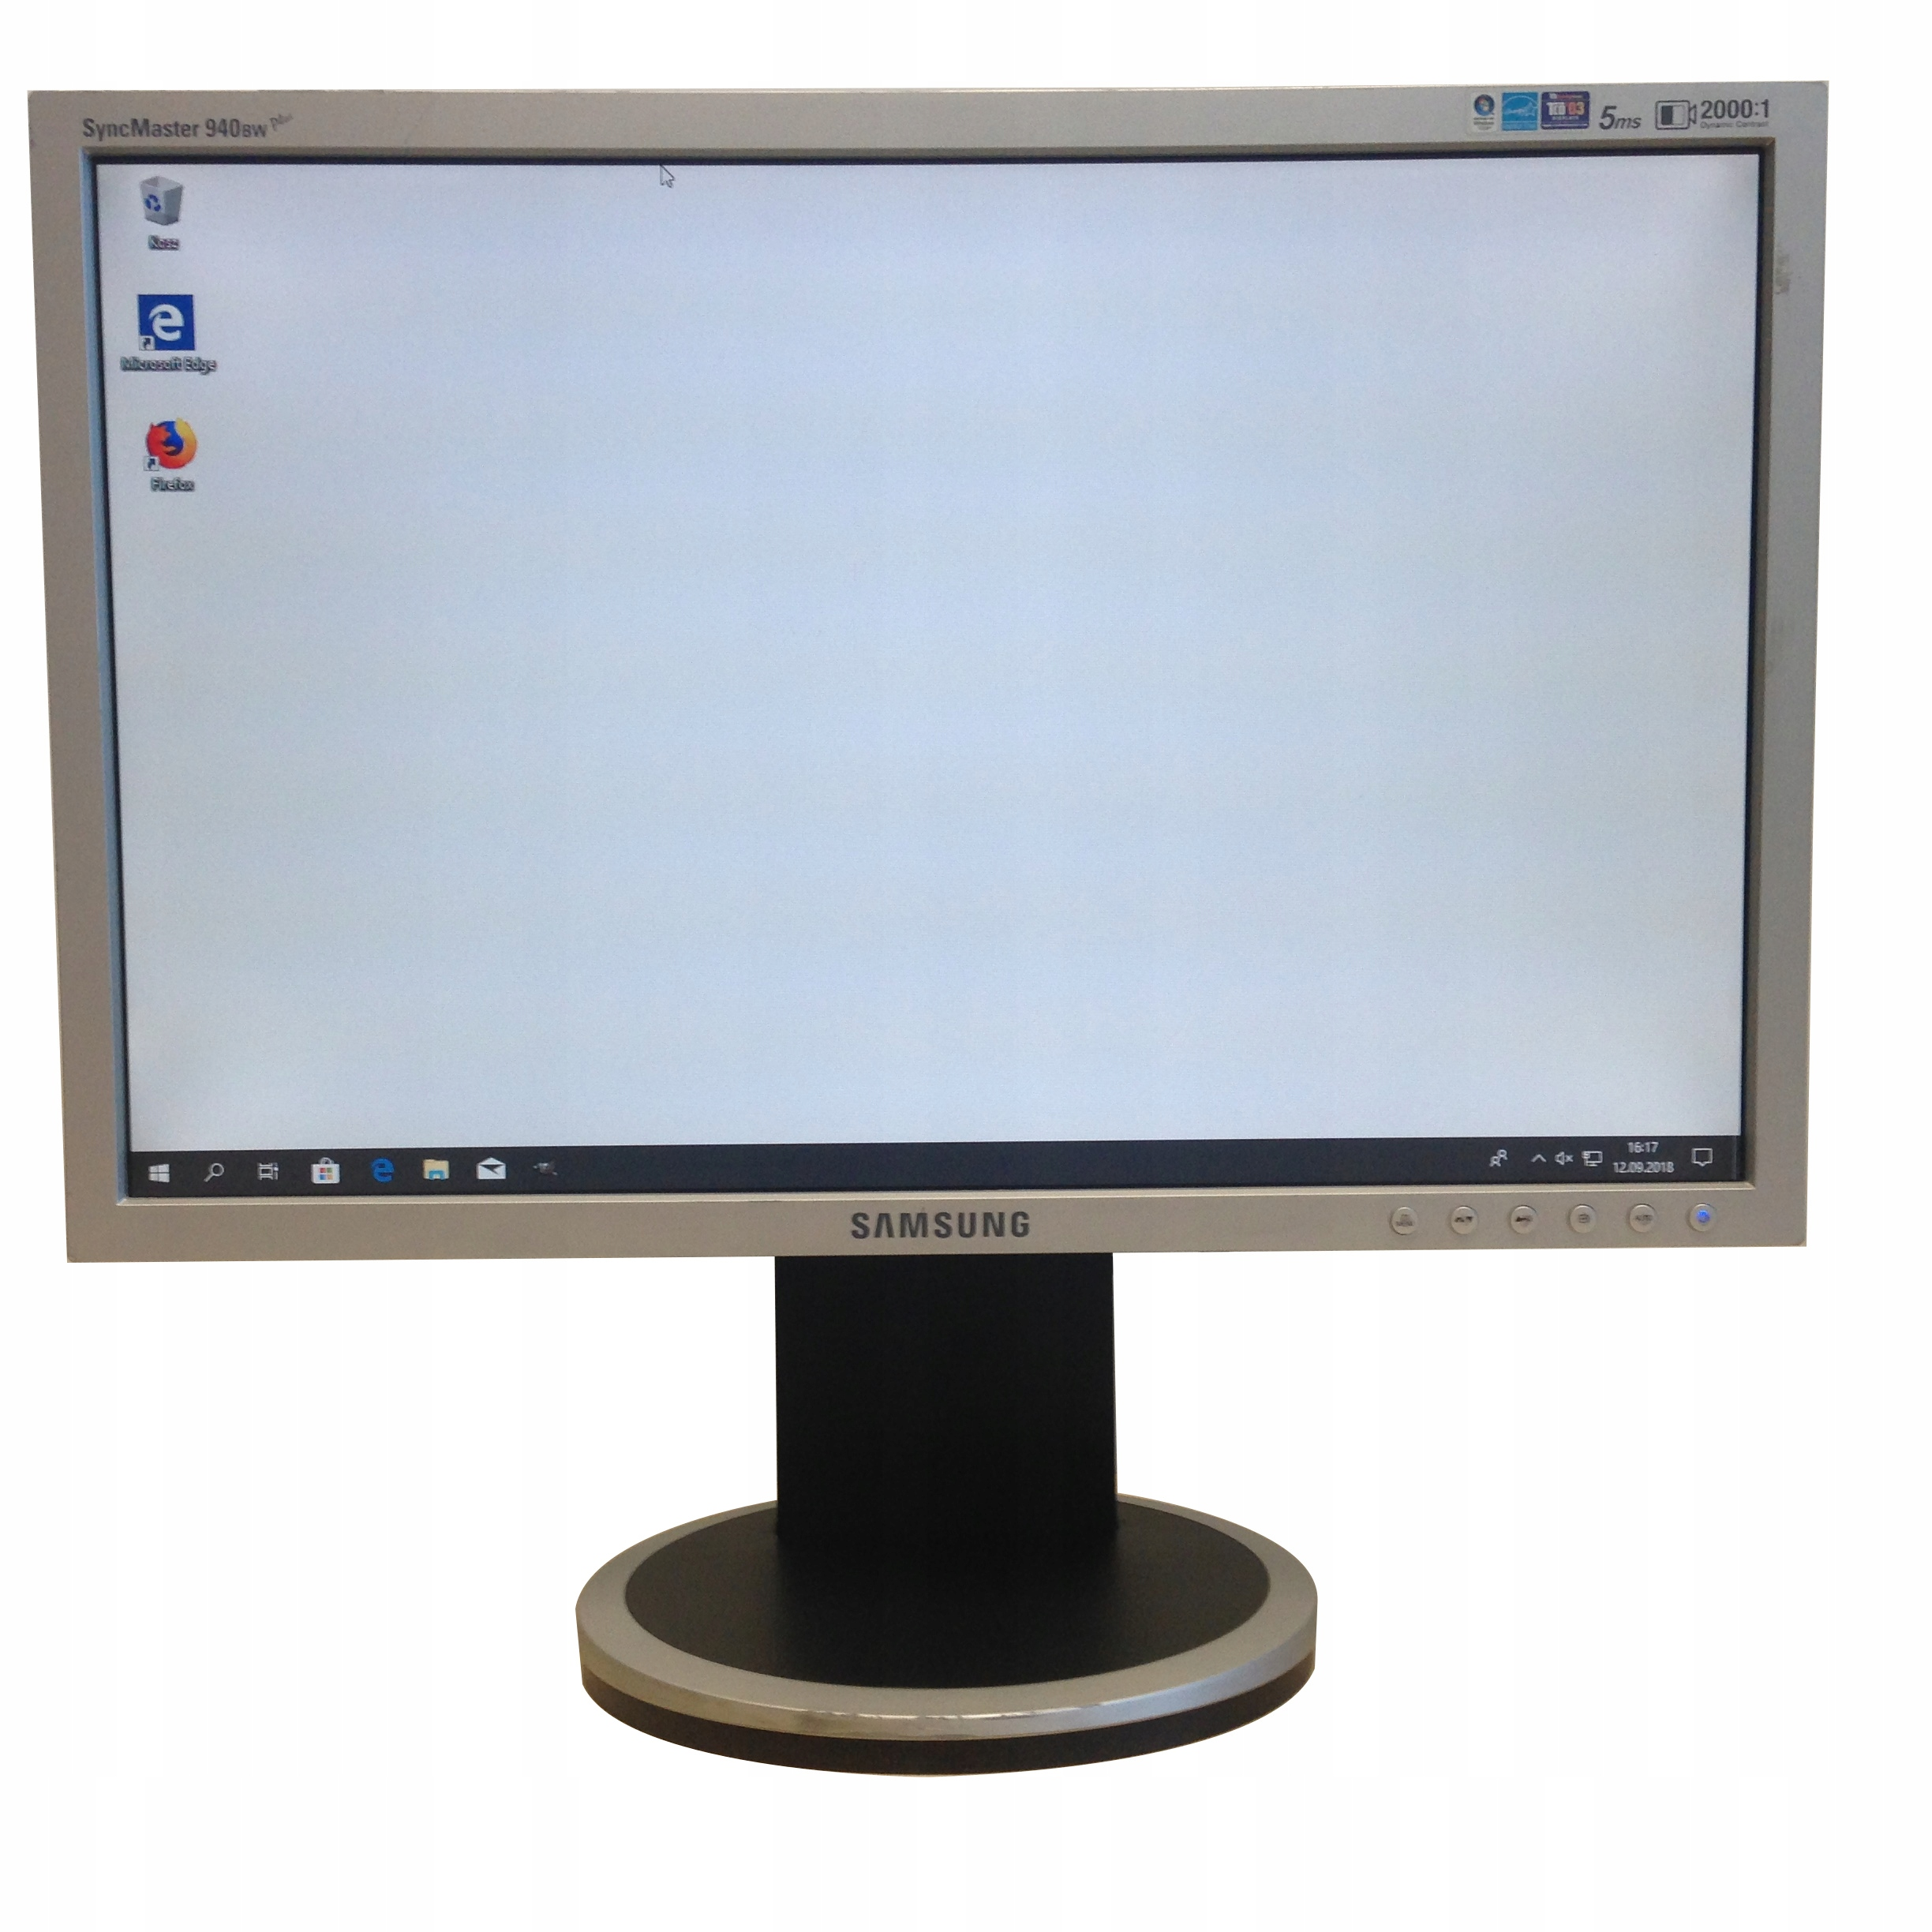 MONITOR SAMSUNG 940BW PLUS 19'' LCD 1440x900